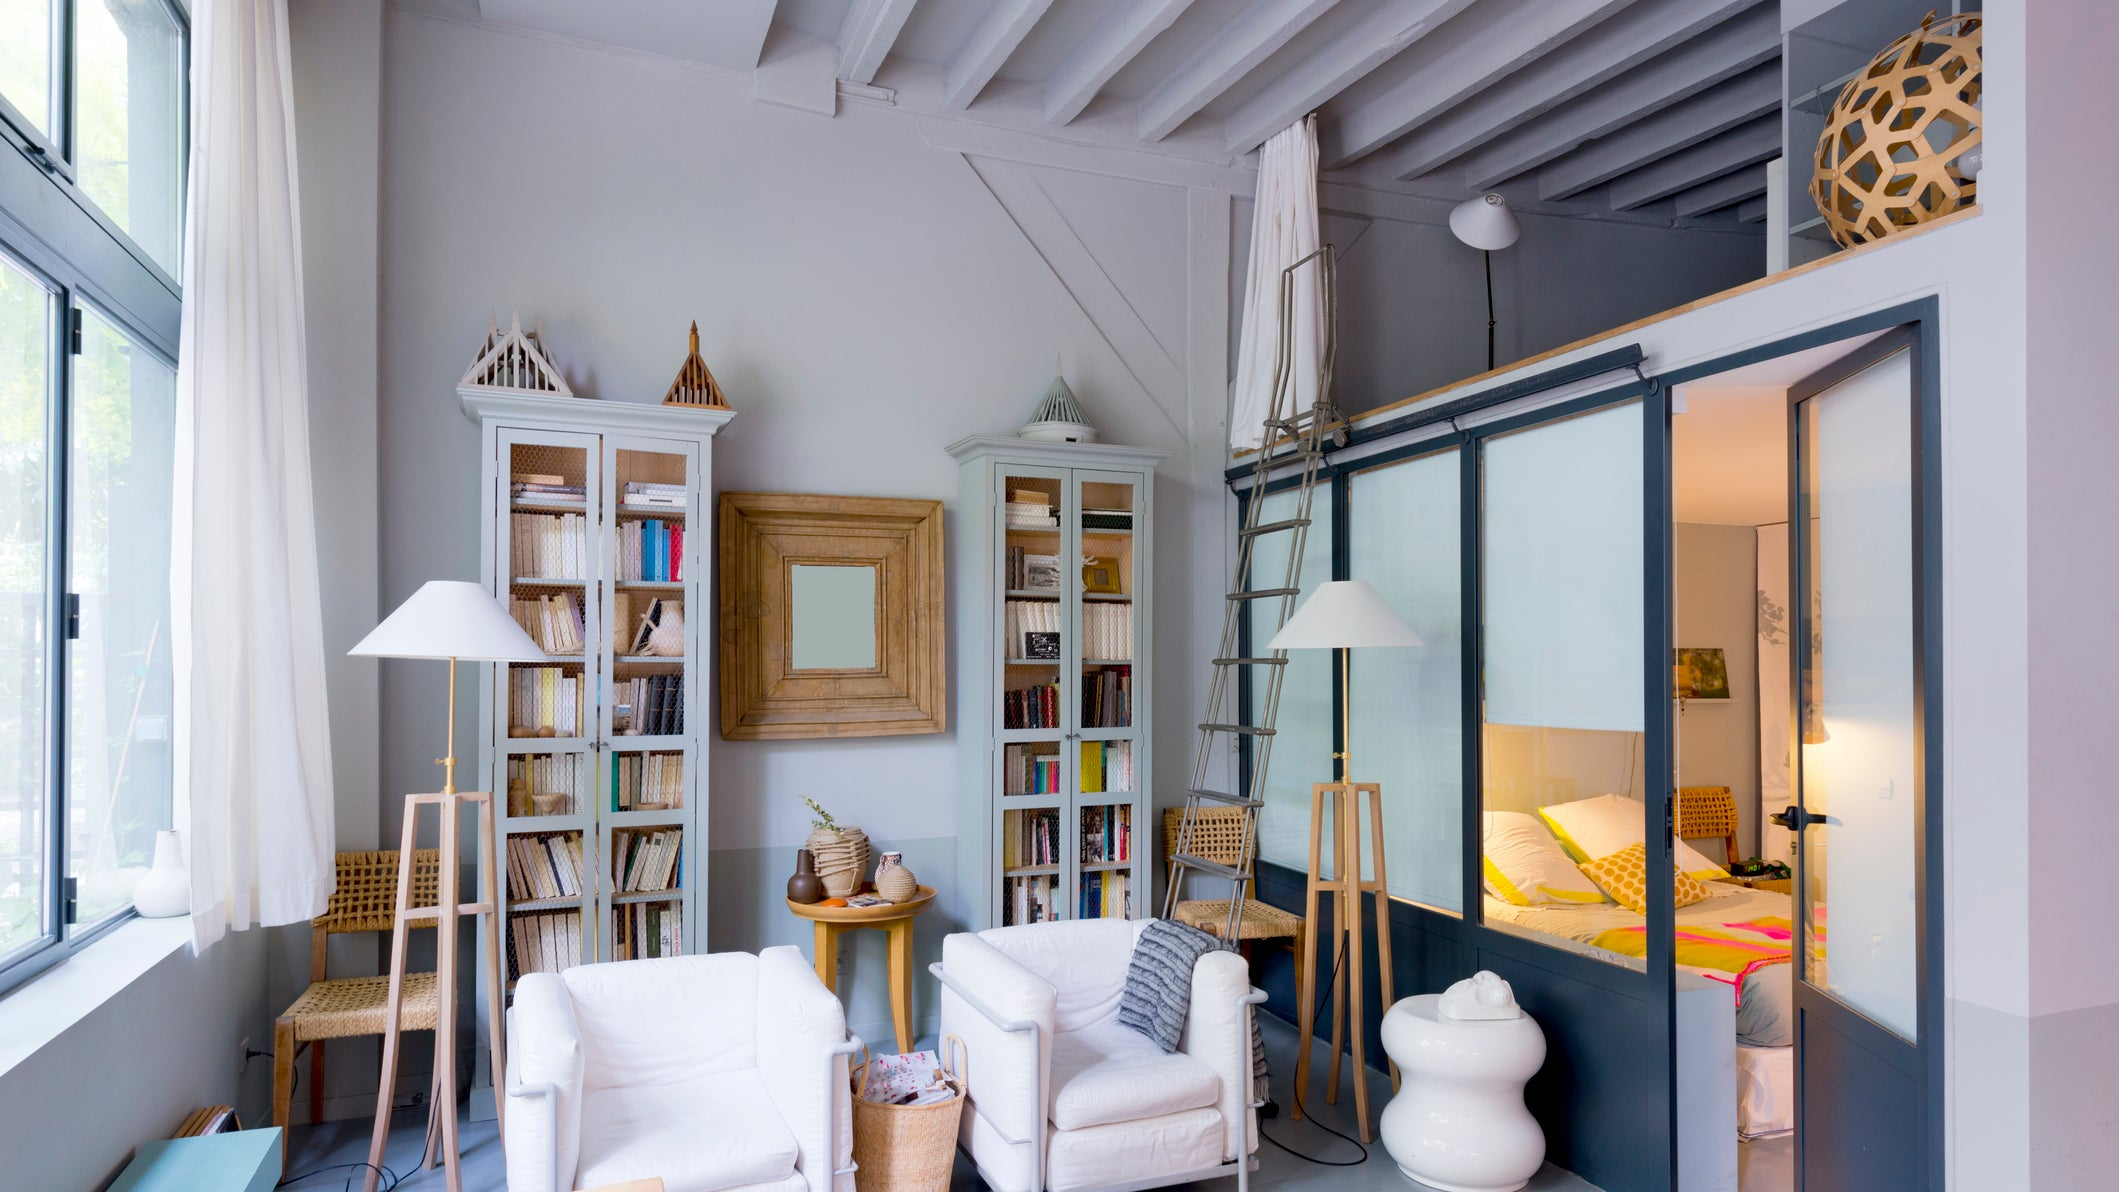 Studio Vs 1 Bedroom Which Is Right For You Millionacres